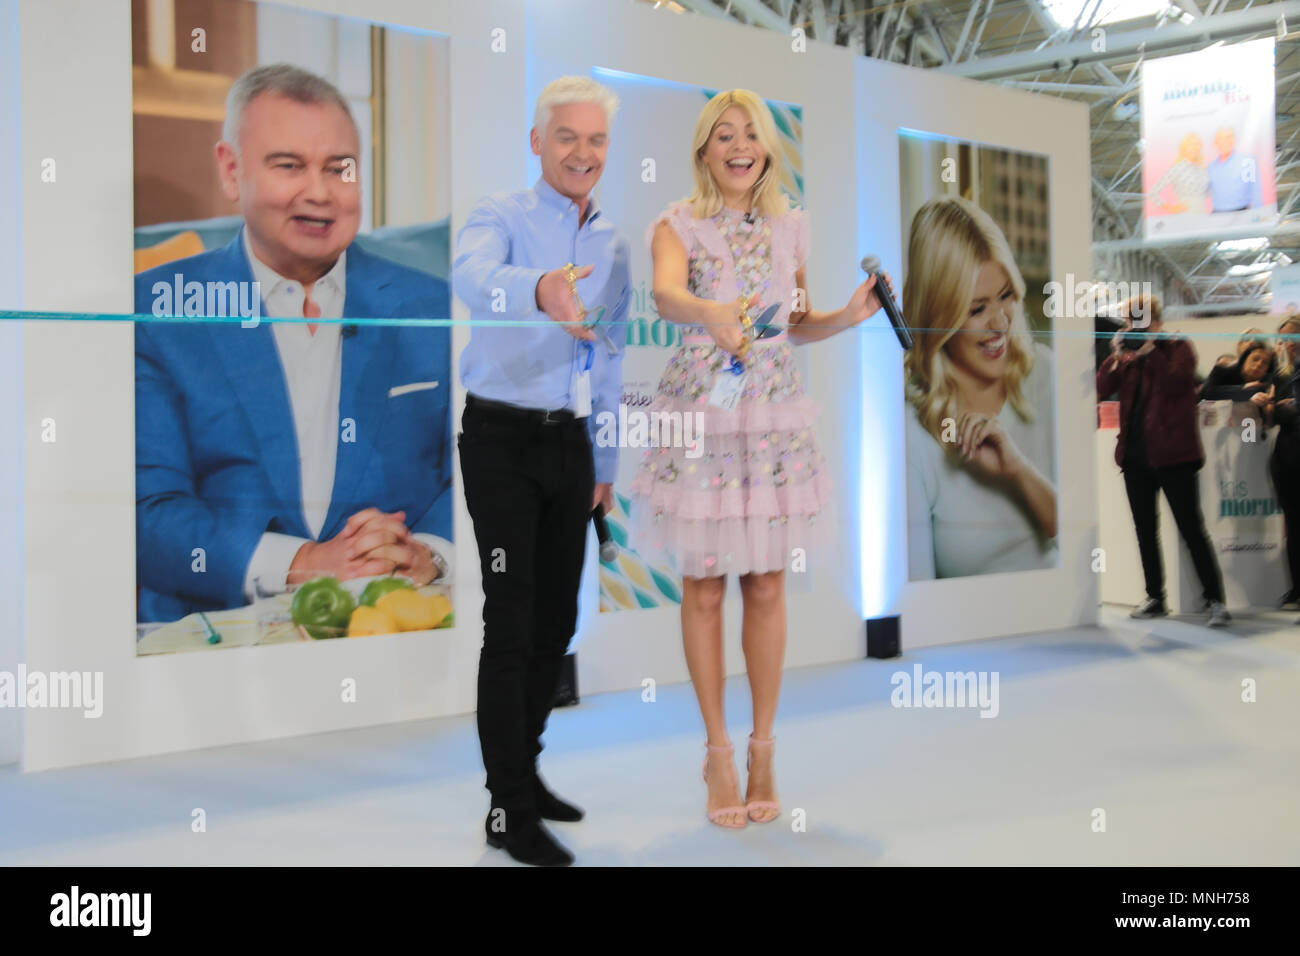 Birmingham UK 17 May 2018 This Morning live show in the NEC ,huge crowd come to see their favourites presenters Phil and Holly,a as te open the show by cutting the ribbon Credit: Paul Quezada-Neiman/Alamy Live News - Stock Image